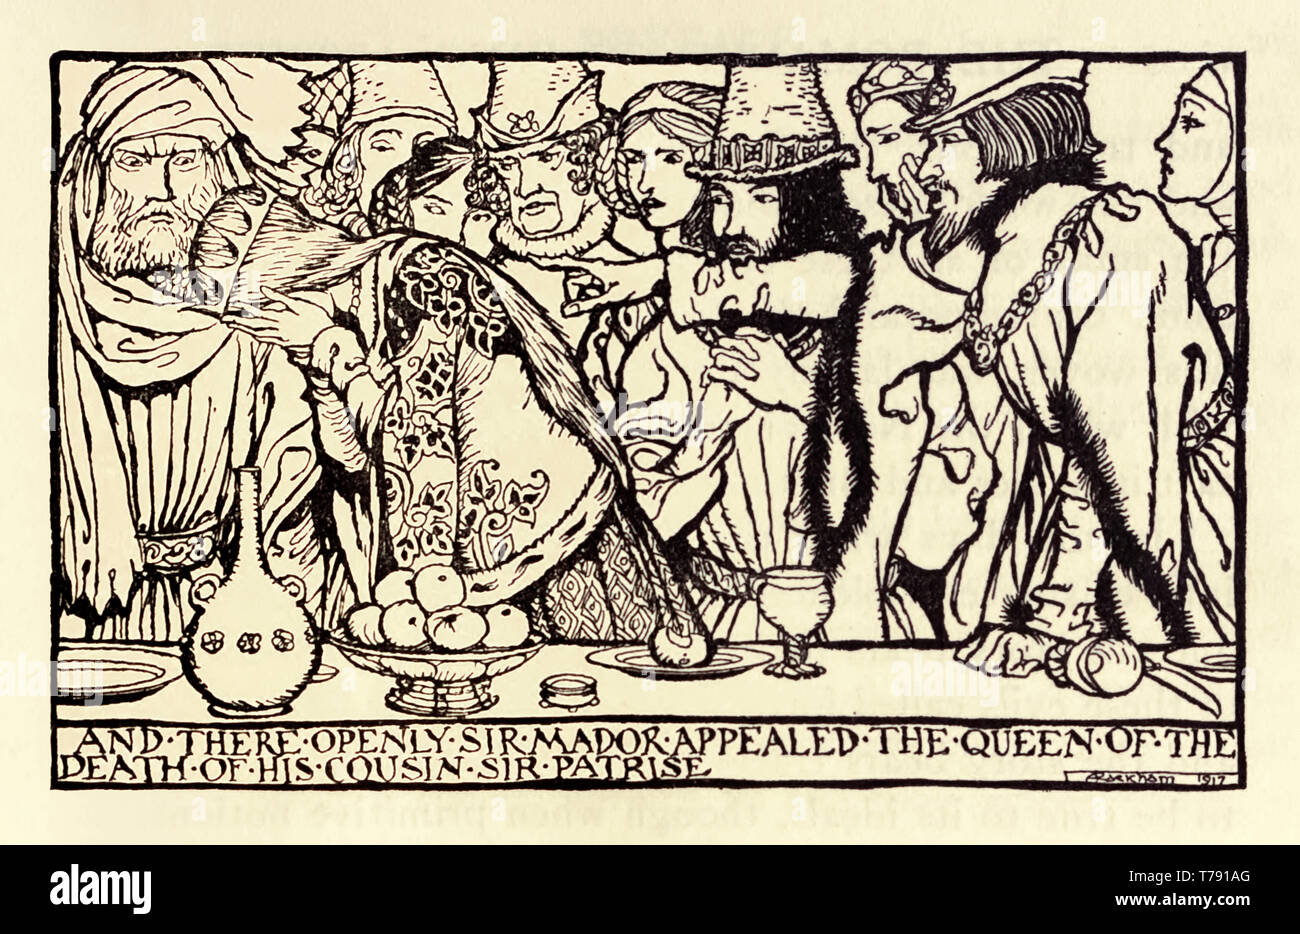 """""""And there openly Sir Mador appealed the Queen of the death of his cousin Sir Patrise"""" illustration by Arthur Rackham (1867-1939) showing Sir Mador accusing Queen Guenevere of poisoning Sir Patrise at a dinner party with her fate to be decided by trial by combat. See description below for more information. - Stock Image"""